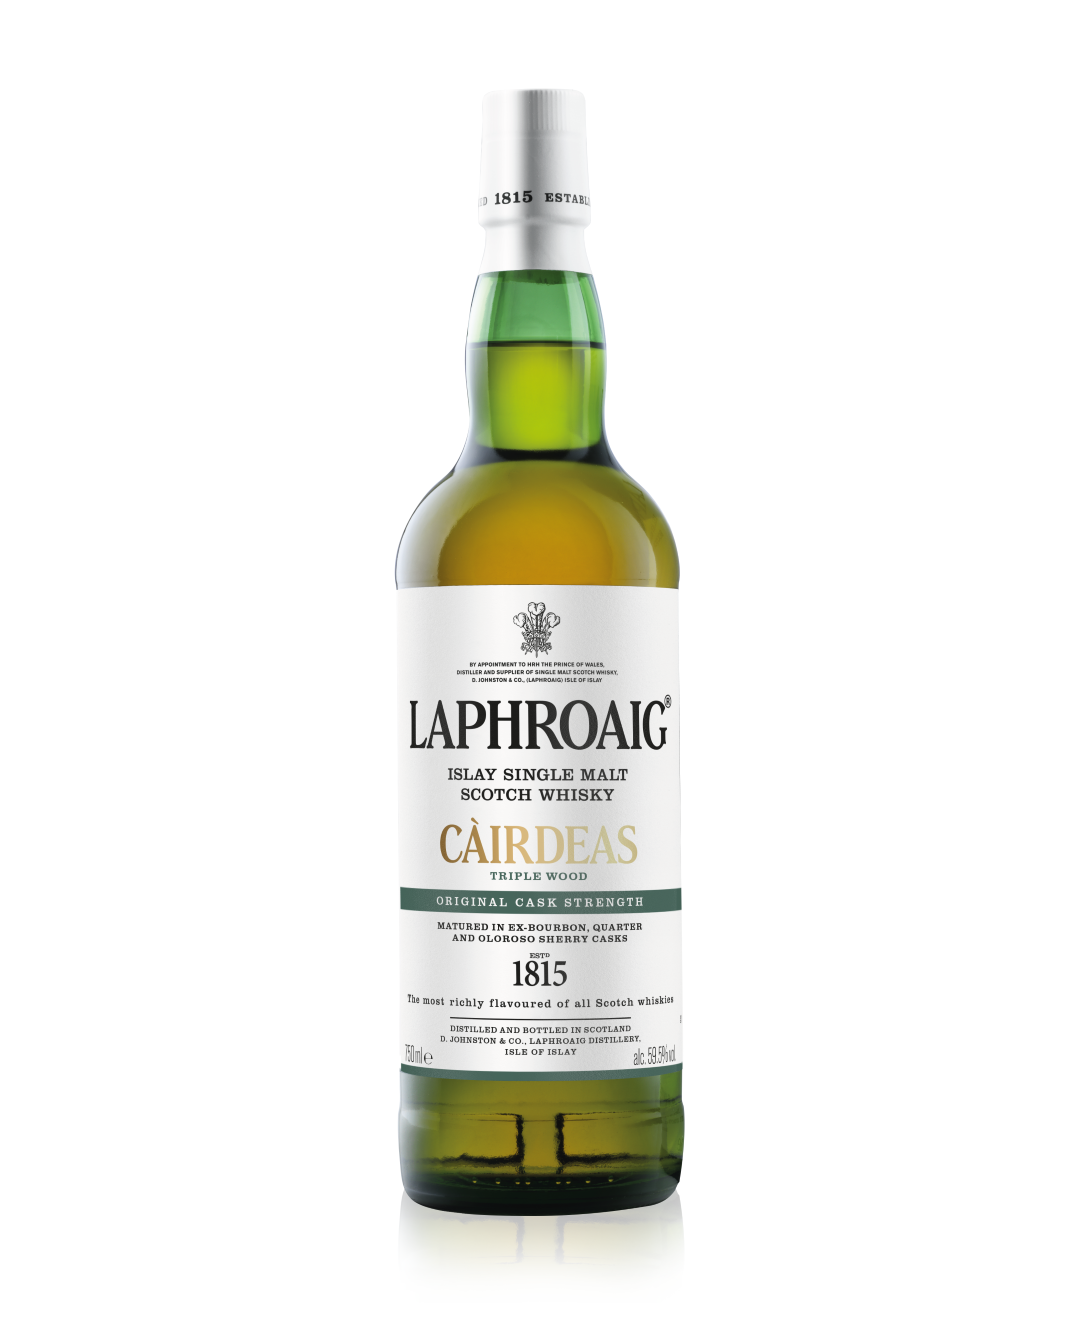 Laphroaig Cairdeas Triple Wood Cask Strength Edition 2019